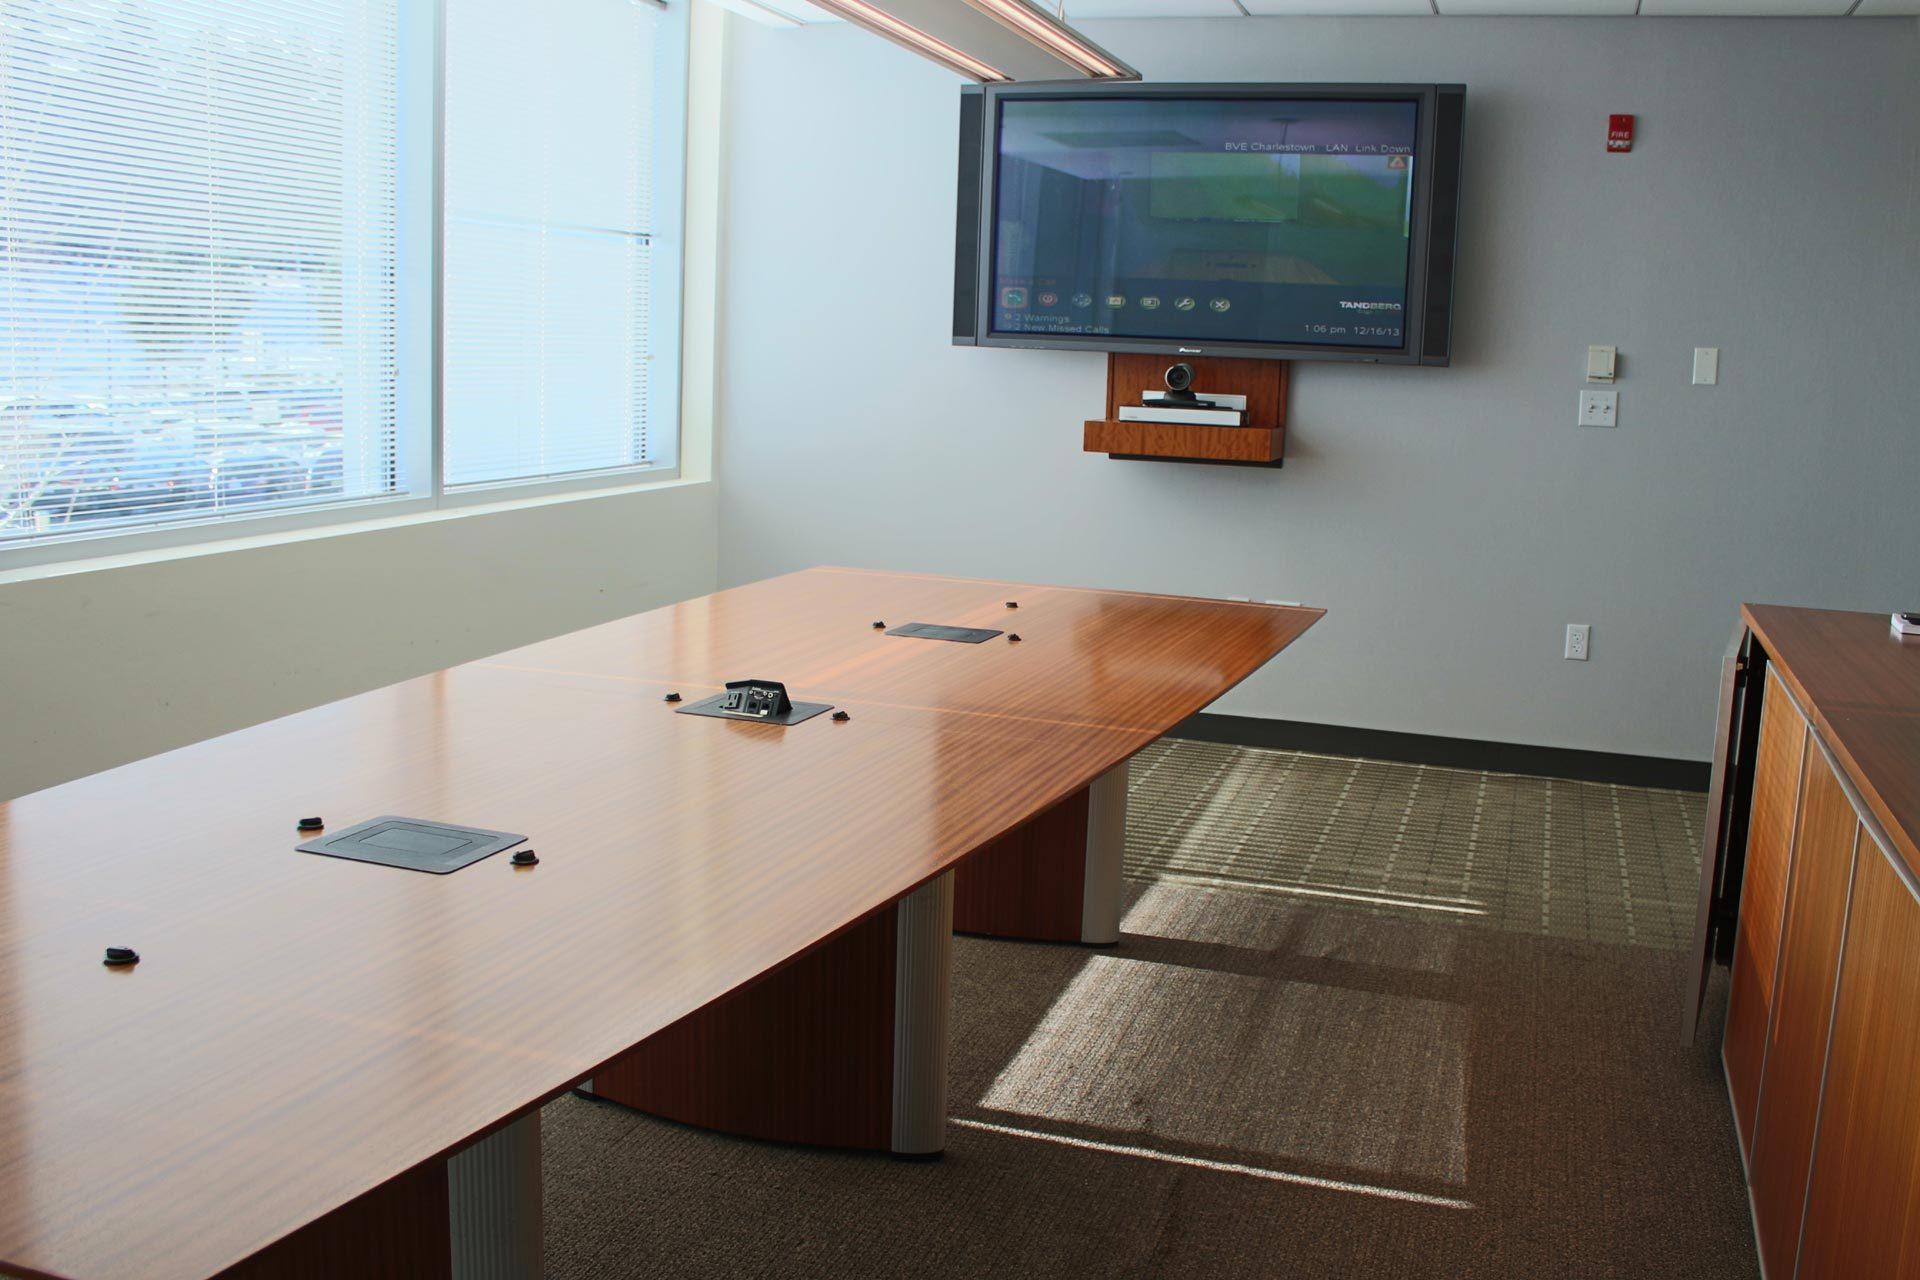 Nienkamper Vox Conference Tables With Forums Peartree Office Furniture - Vox conference table